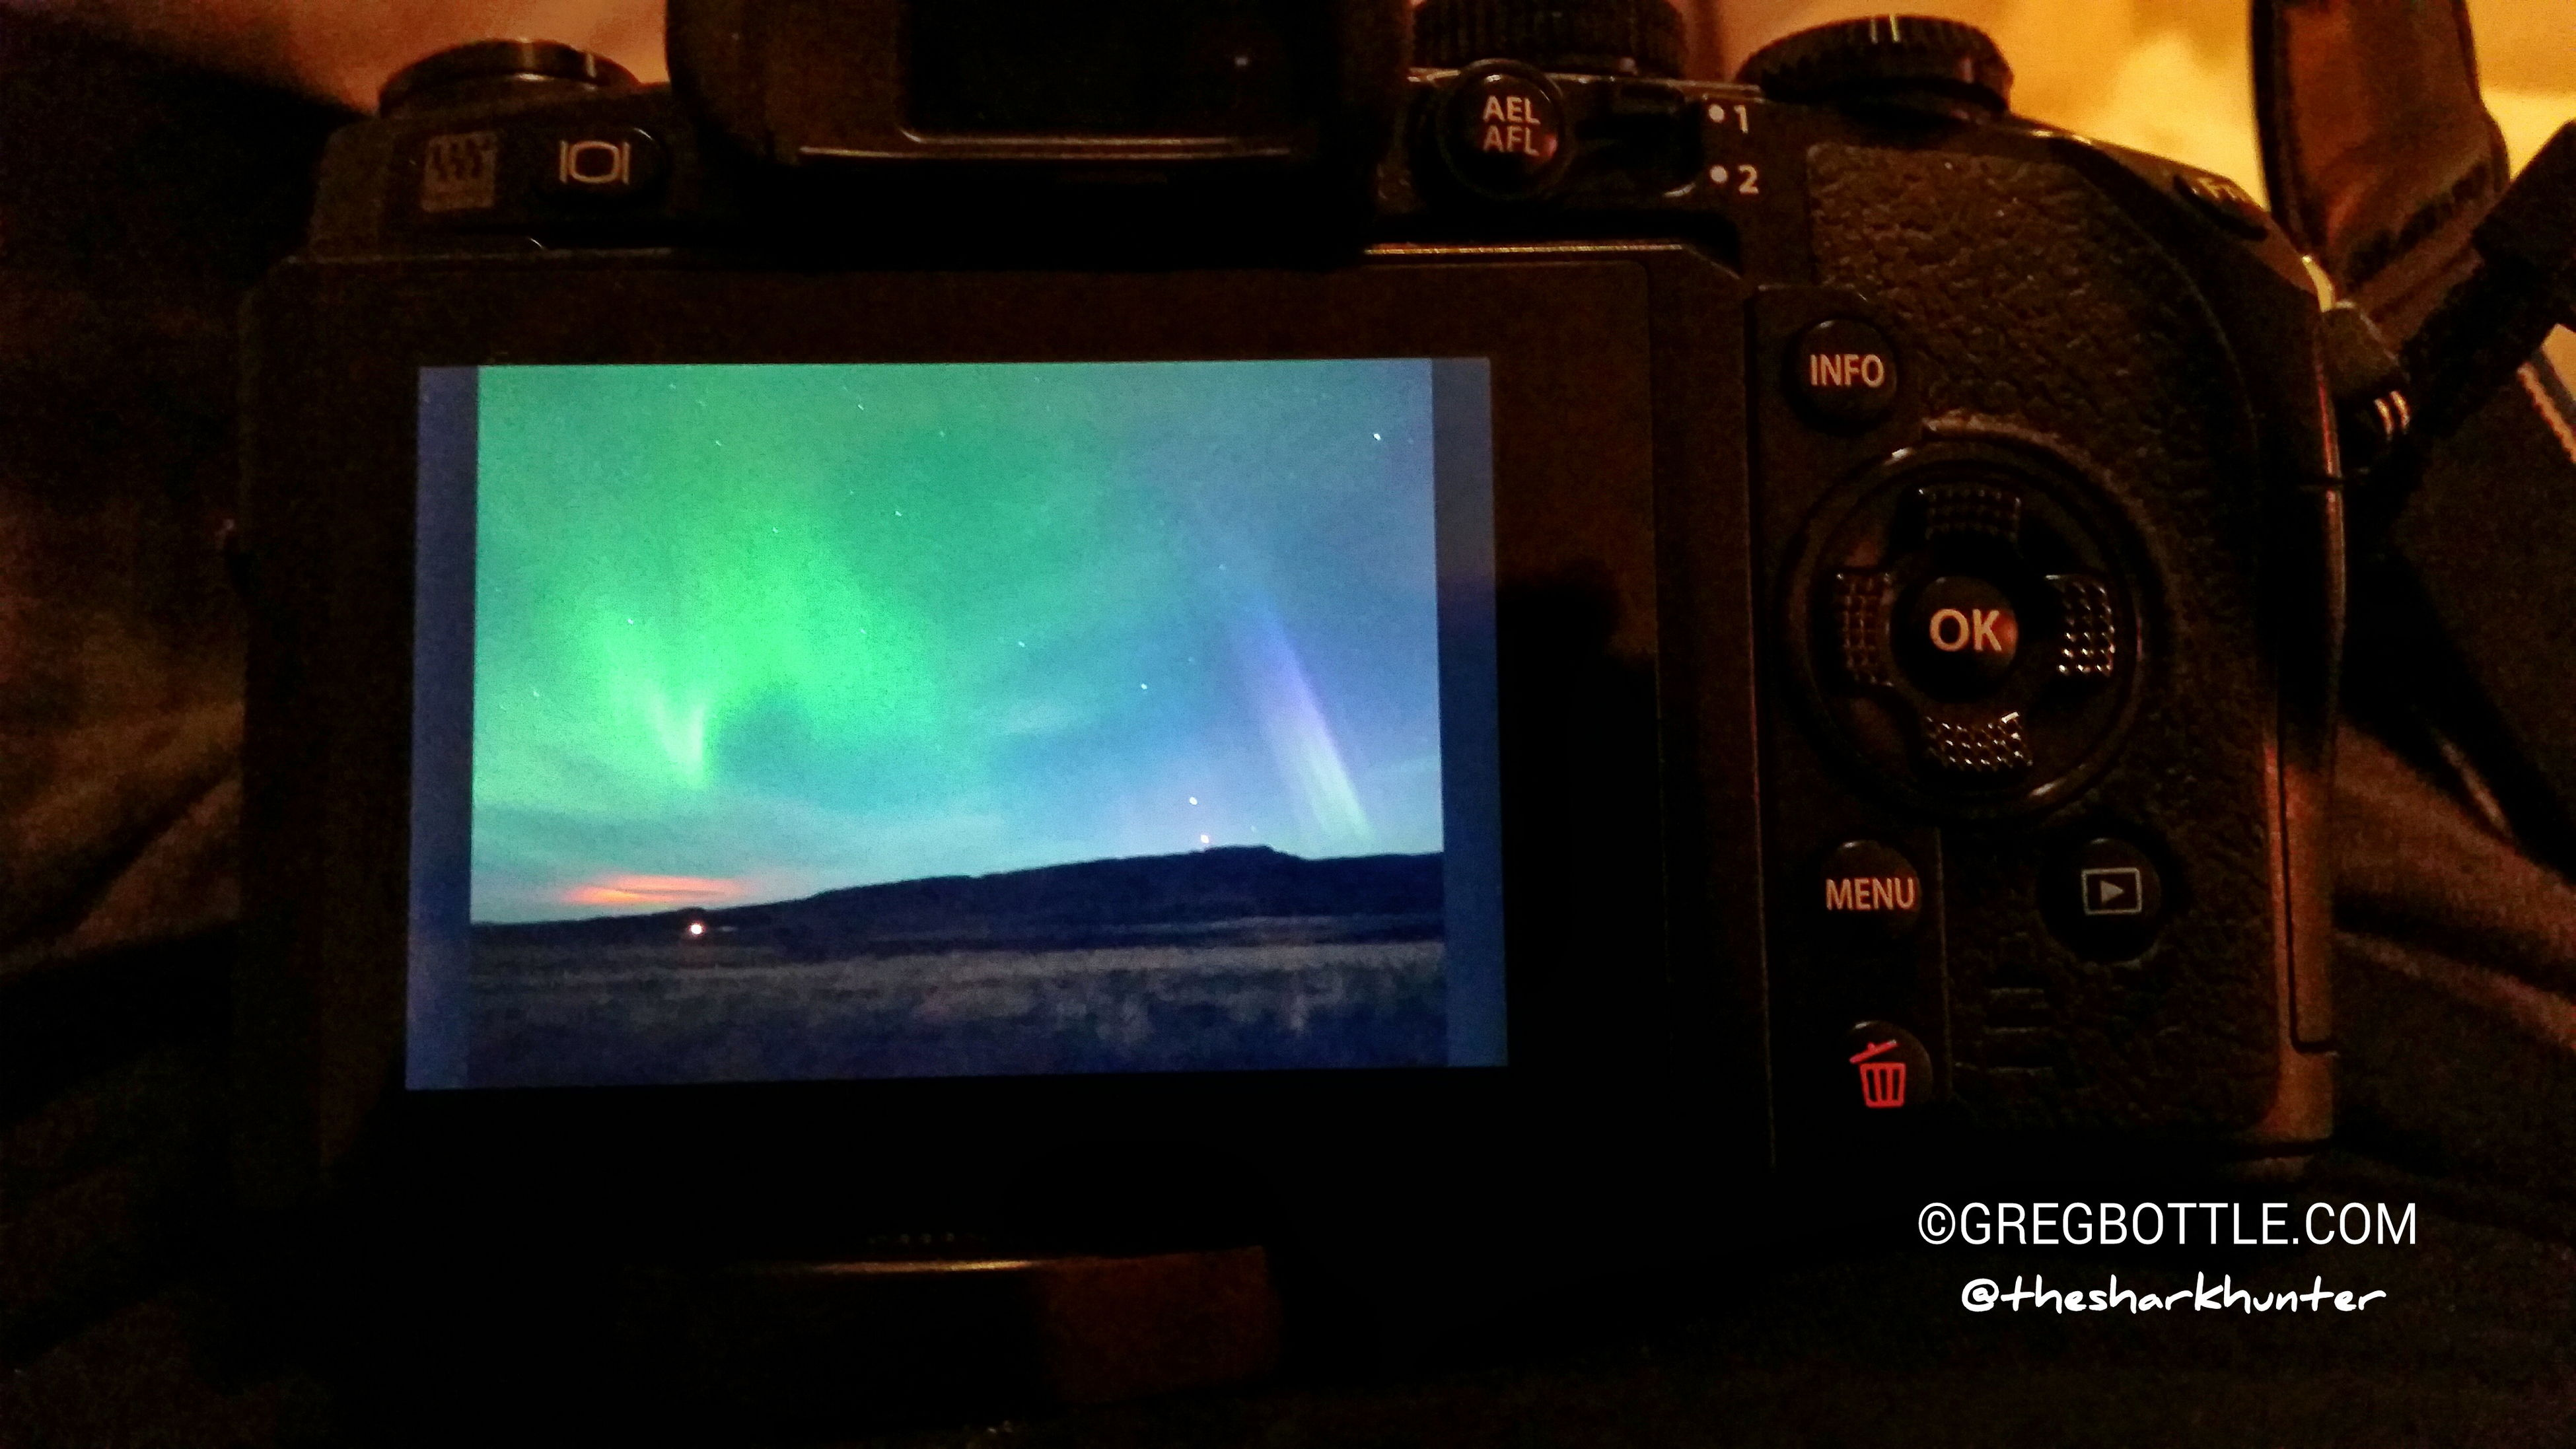 Aurora was pretty good tonight at Egilsstadir, until clouds rolled in. Sorry, proper photos won't come until I get back home, but here is a teaser of the back of my camera. Iceland Aurora Borealis Nature_collection EyeEm Nature Lovers